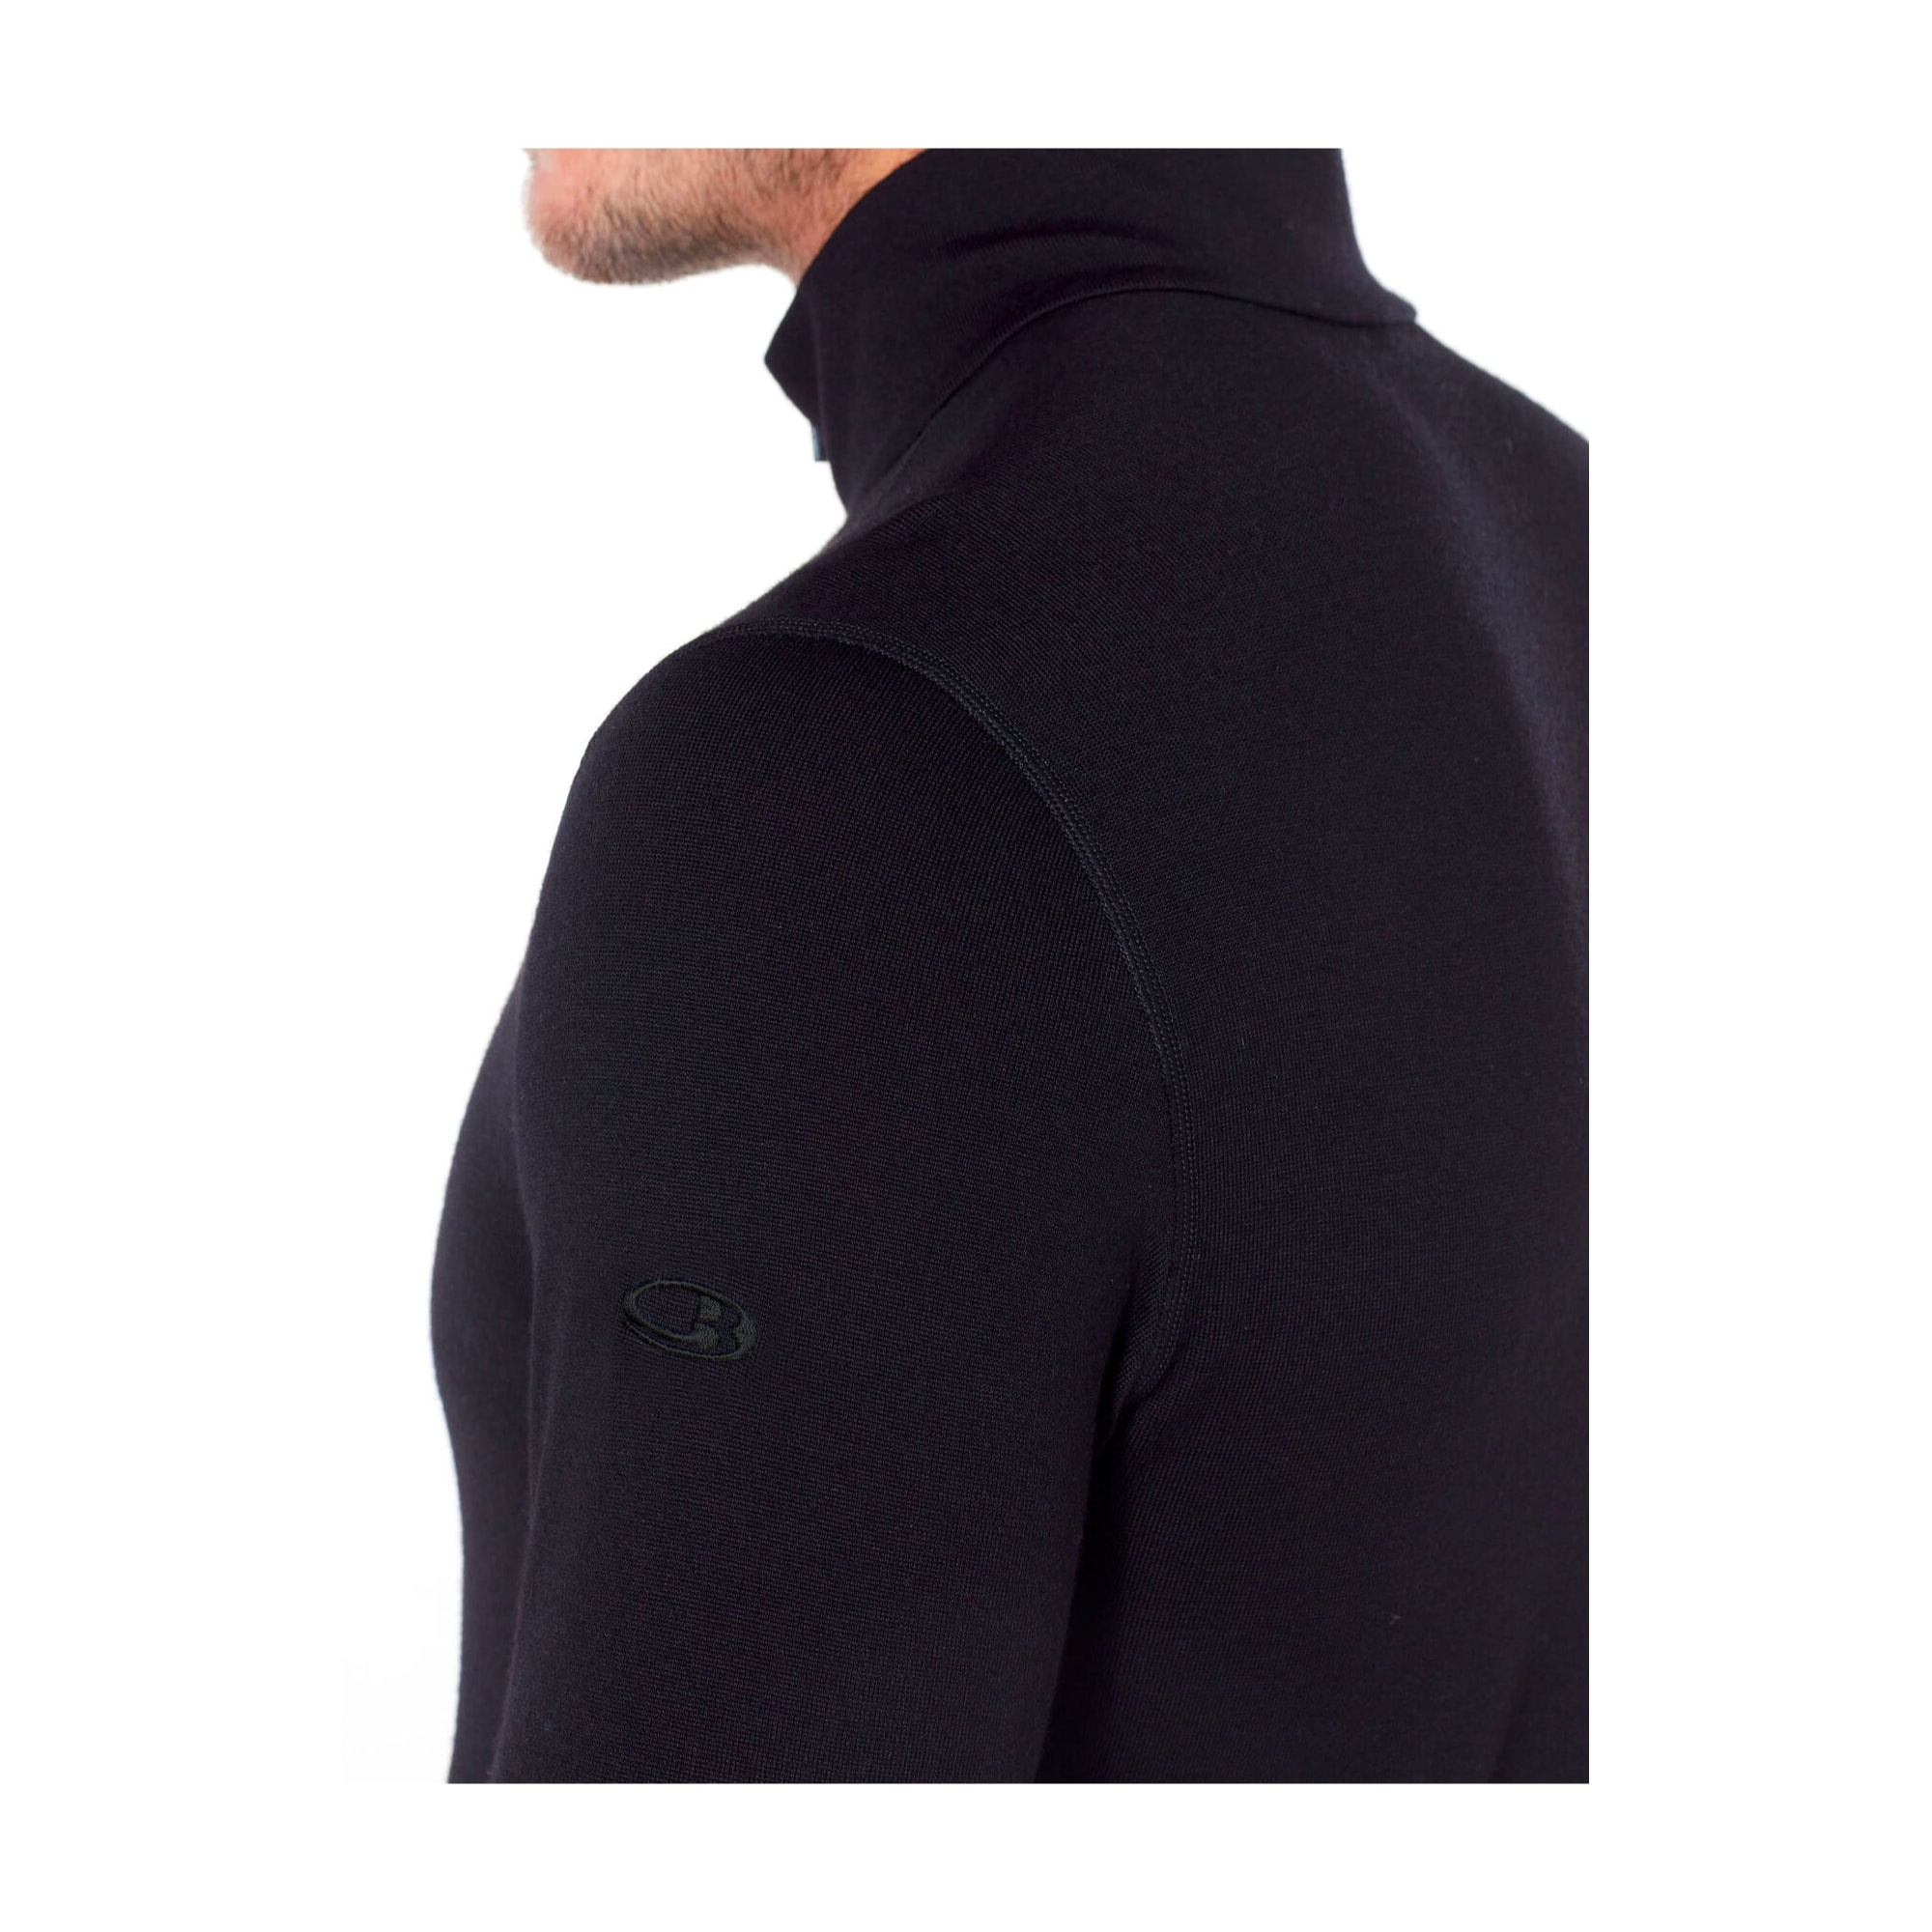 Men's 260 Tech Long Sleeve Half Zip-5